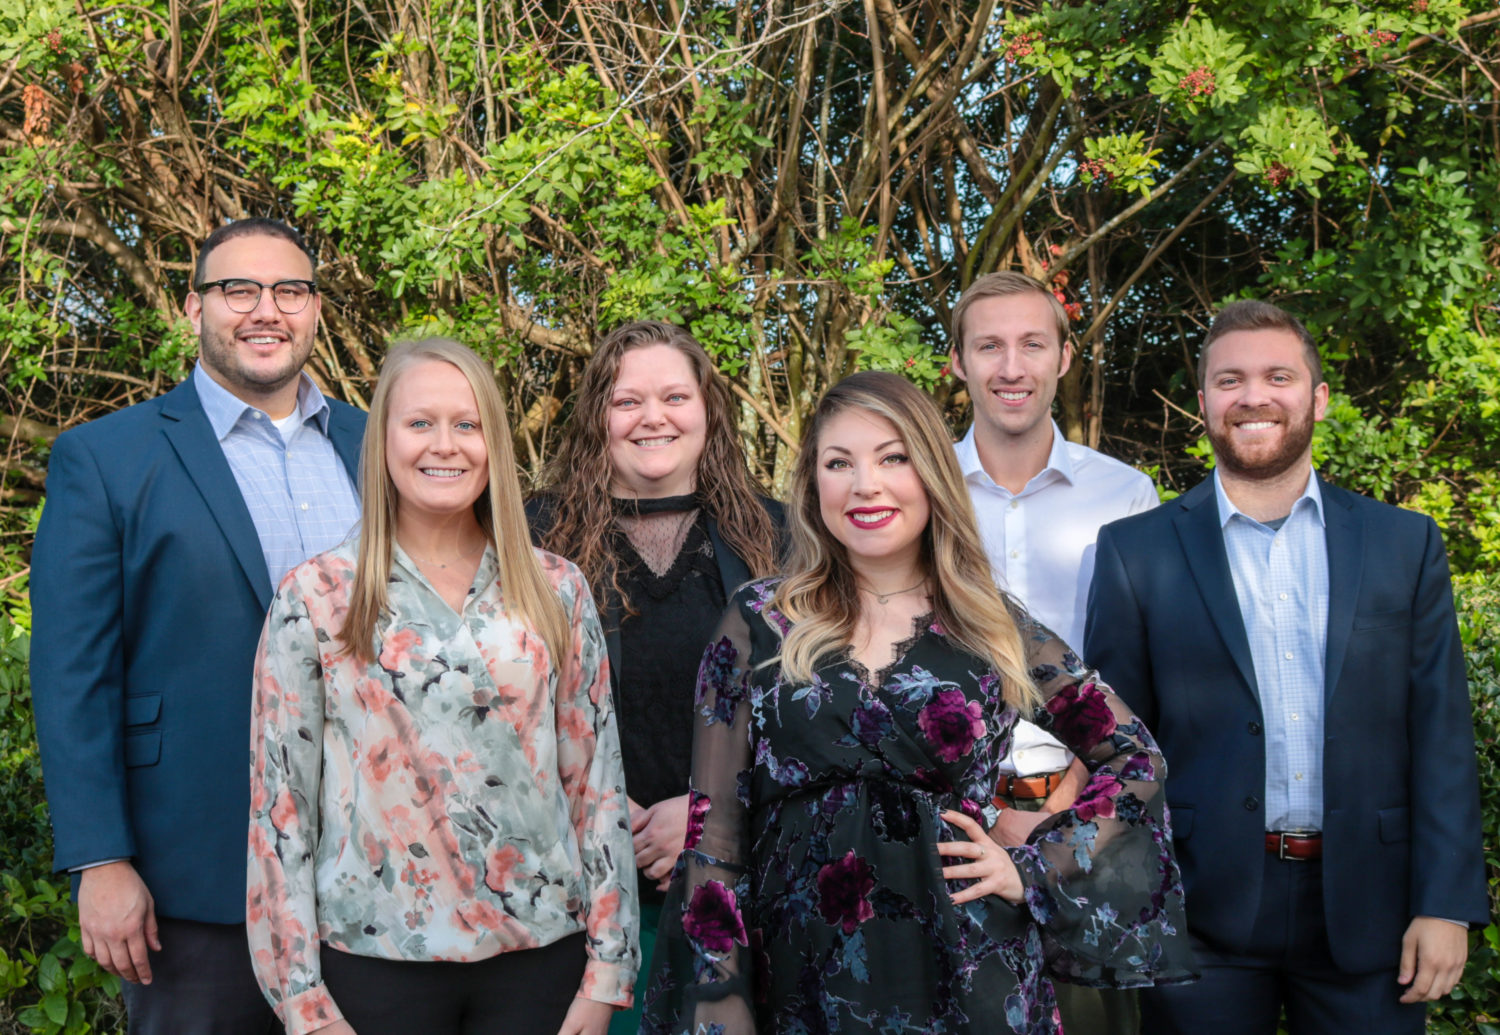 Client Success Team Photo